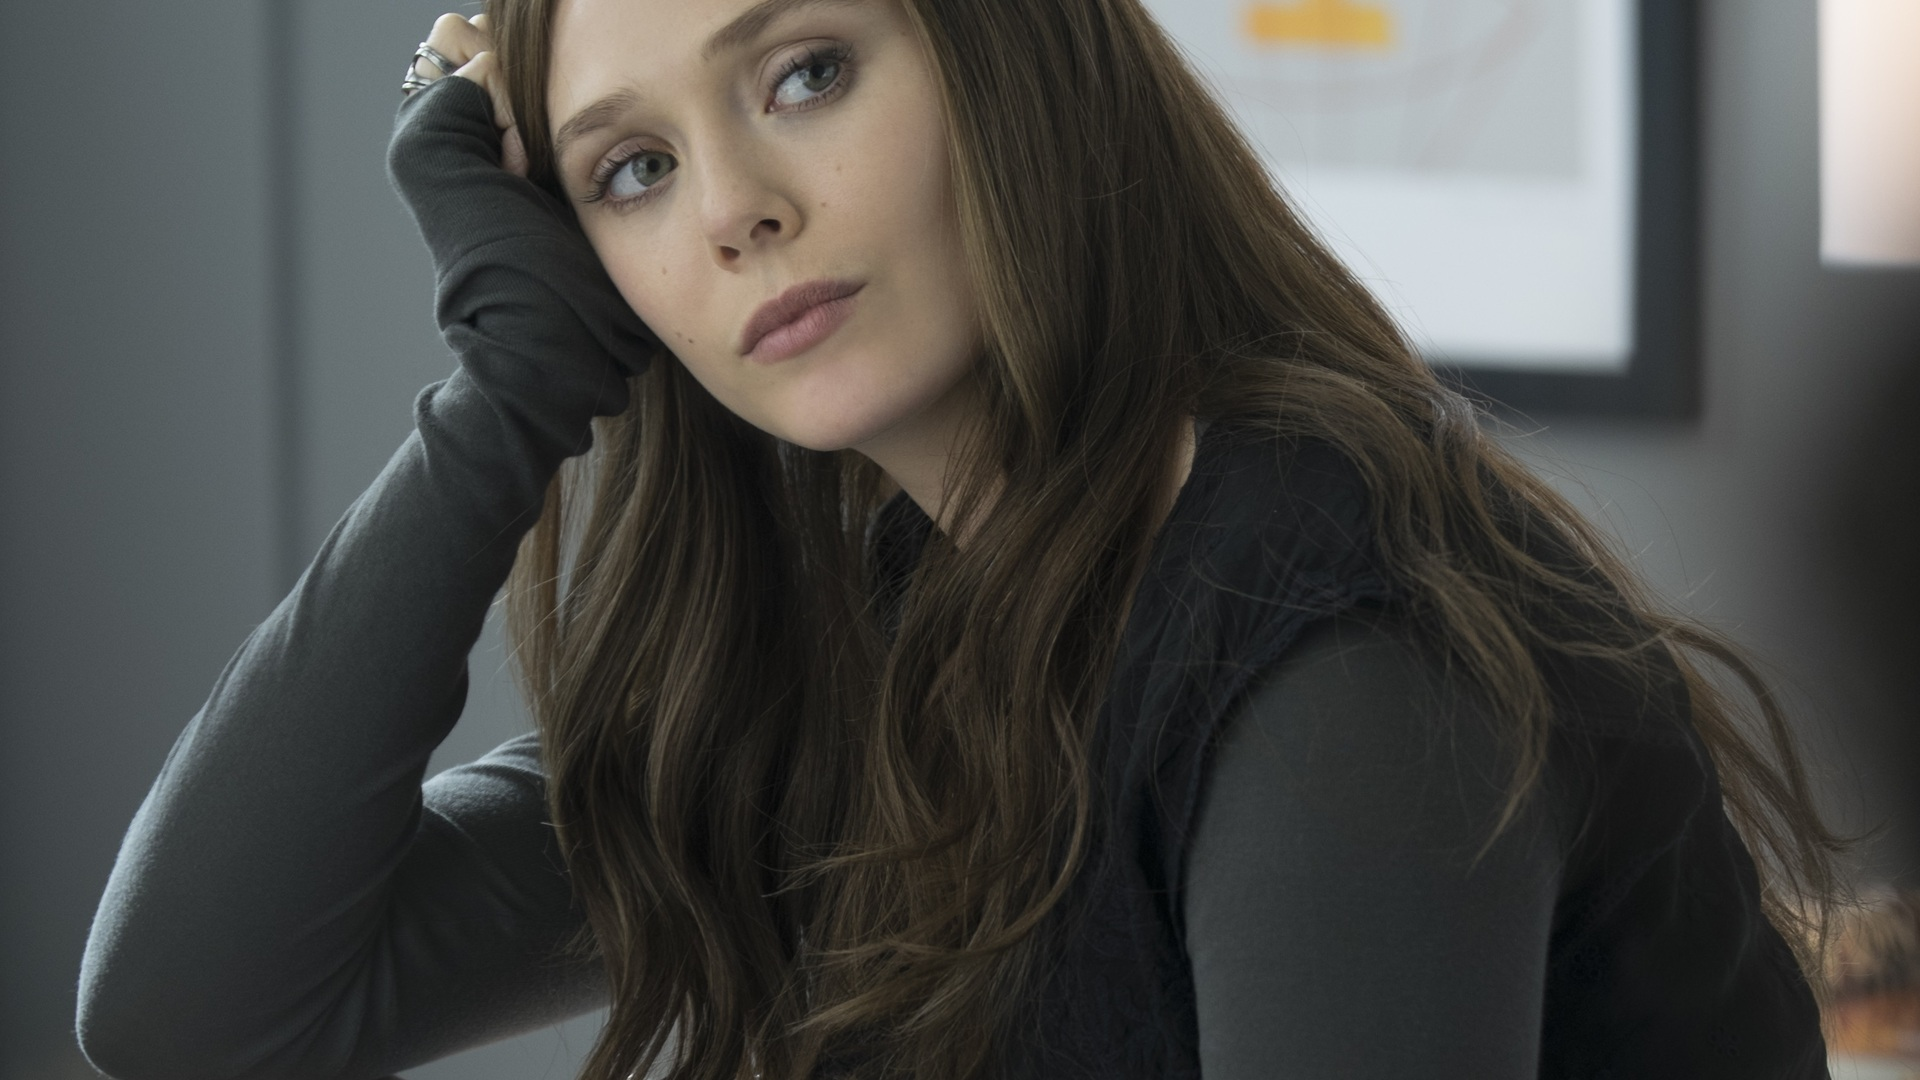 1920x1080 Elizabeth Olsen As Scarlet Witch Laptop Full HD 1080P HD 4k Wallpapers. Images. Backgrounds. Photos and Pictures